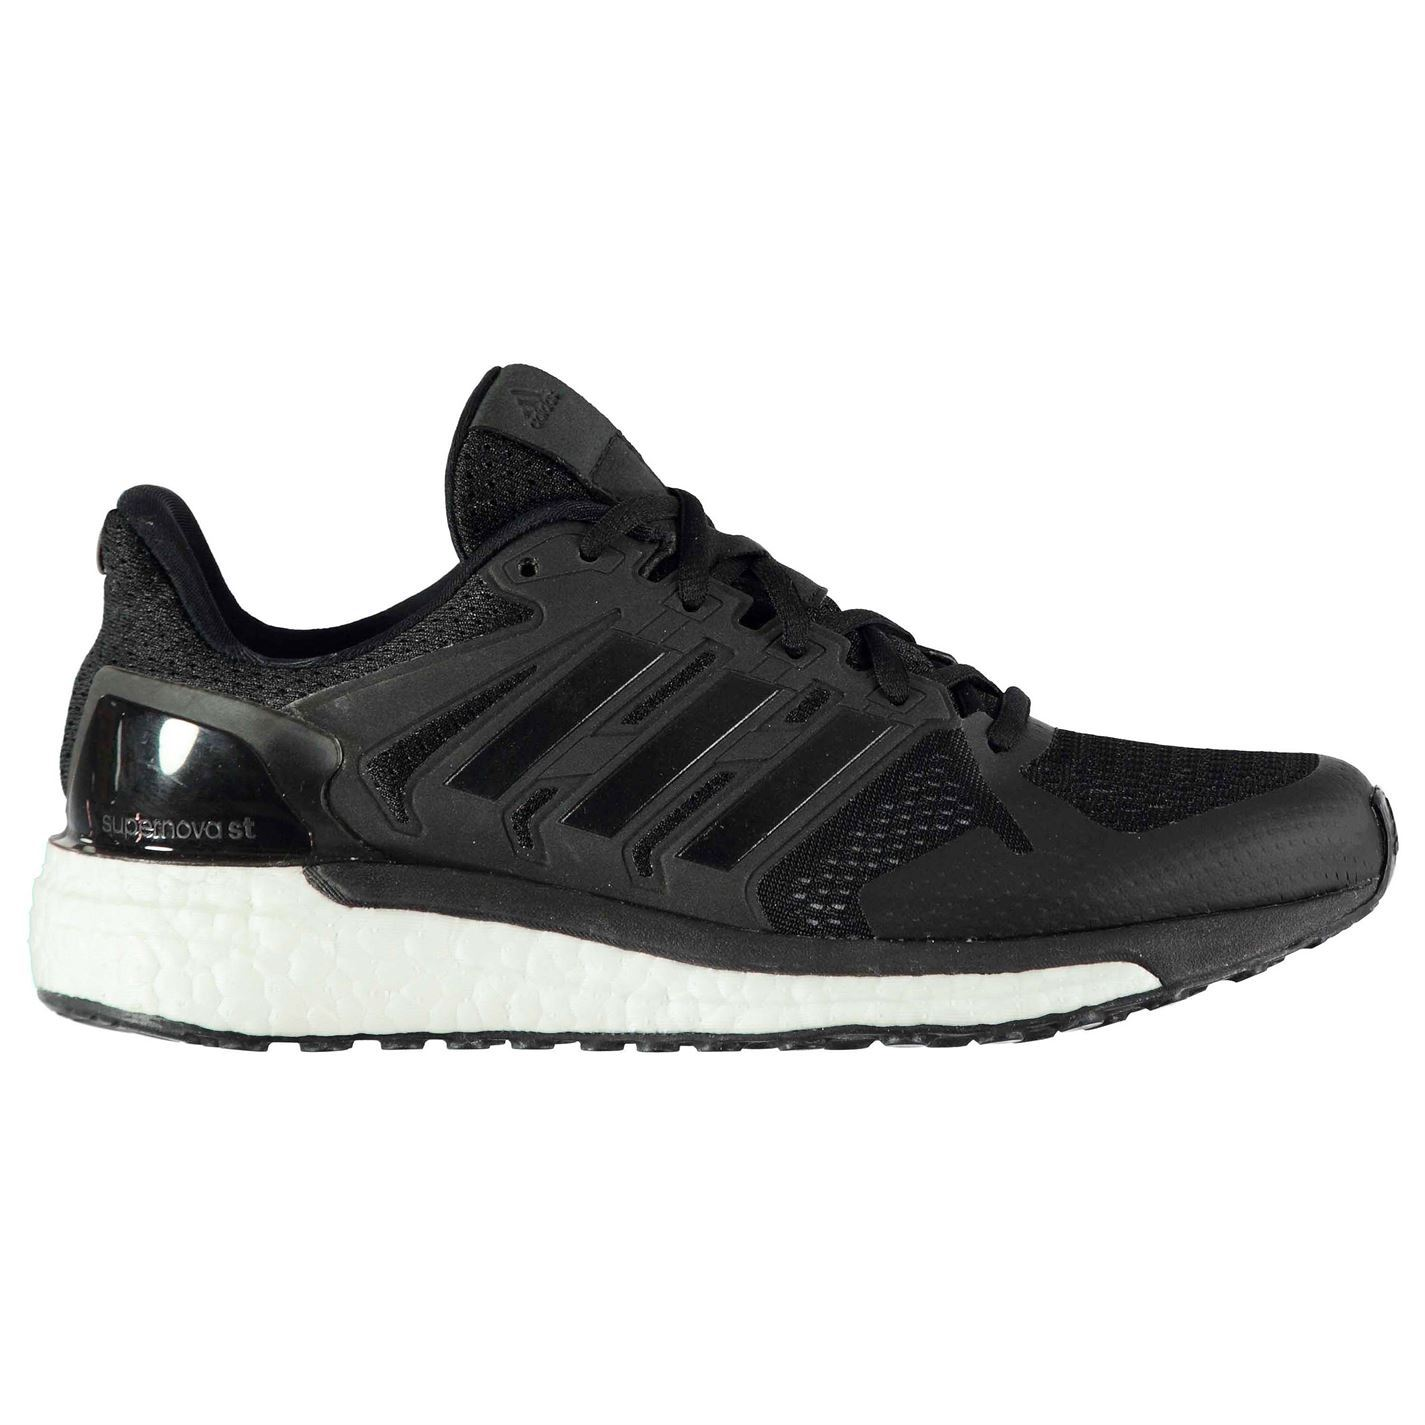 1b8ea1d06 adidas Supernova ST Running Shoes Womens Black White Jogging Trainers  Sneakers